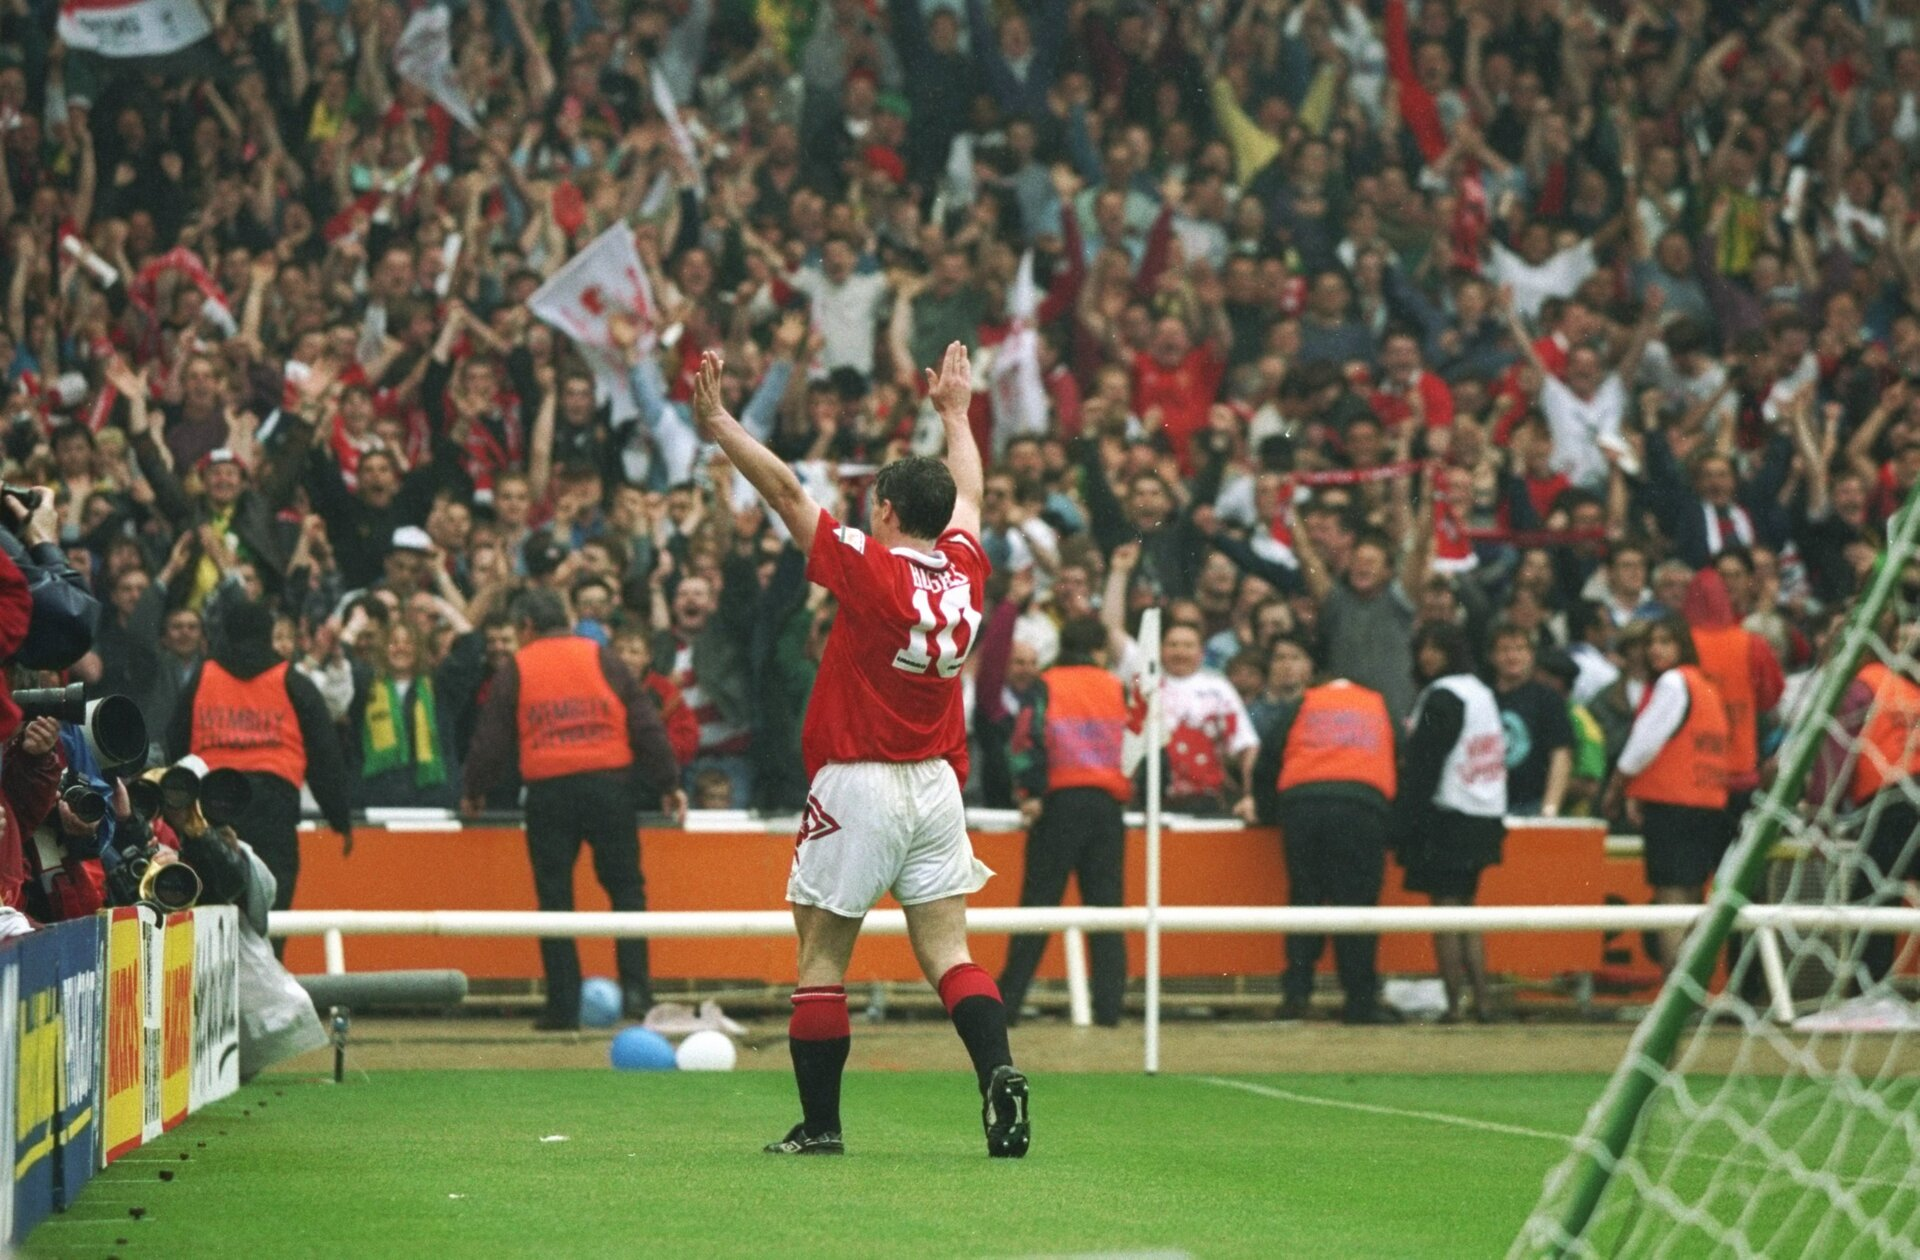 14 May 1994:  Mark Hughes of Manchester United celebrates his goal during the FA Cup Final against Chelsea at Wembley Stadium in London. Manchester United won the match 4-0. \ Mandatory Credit: Allsport UK /Allsport